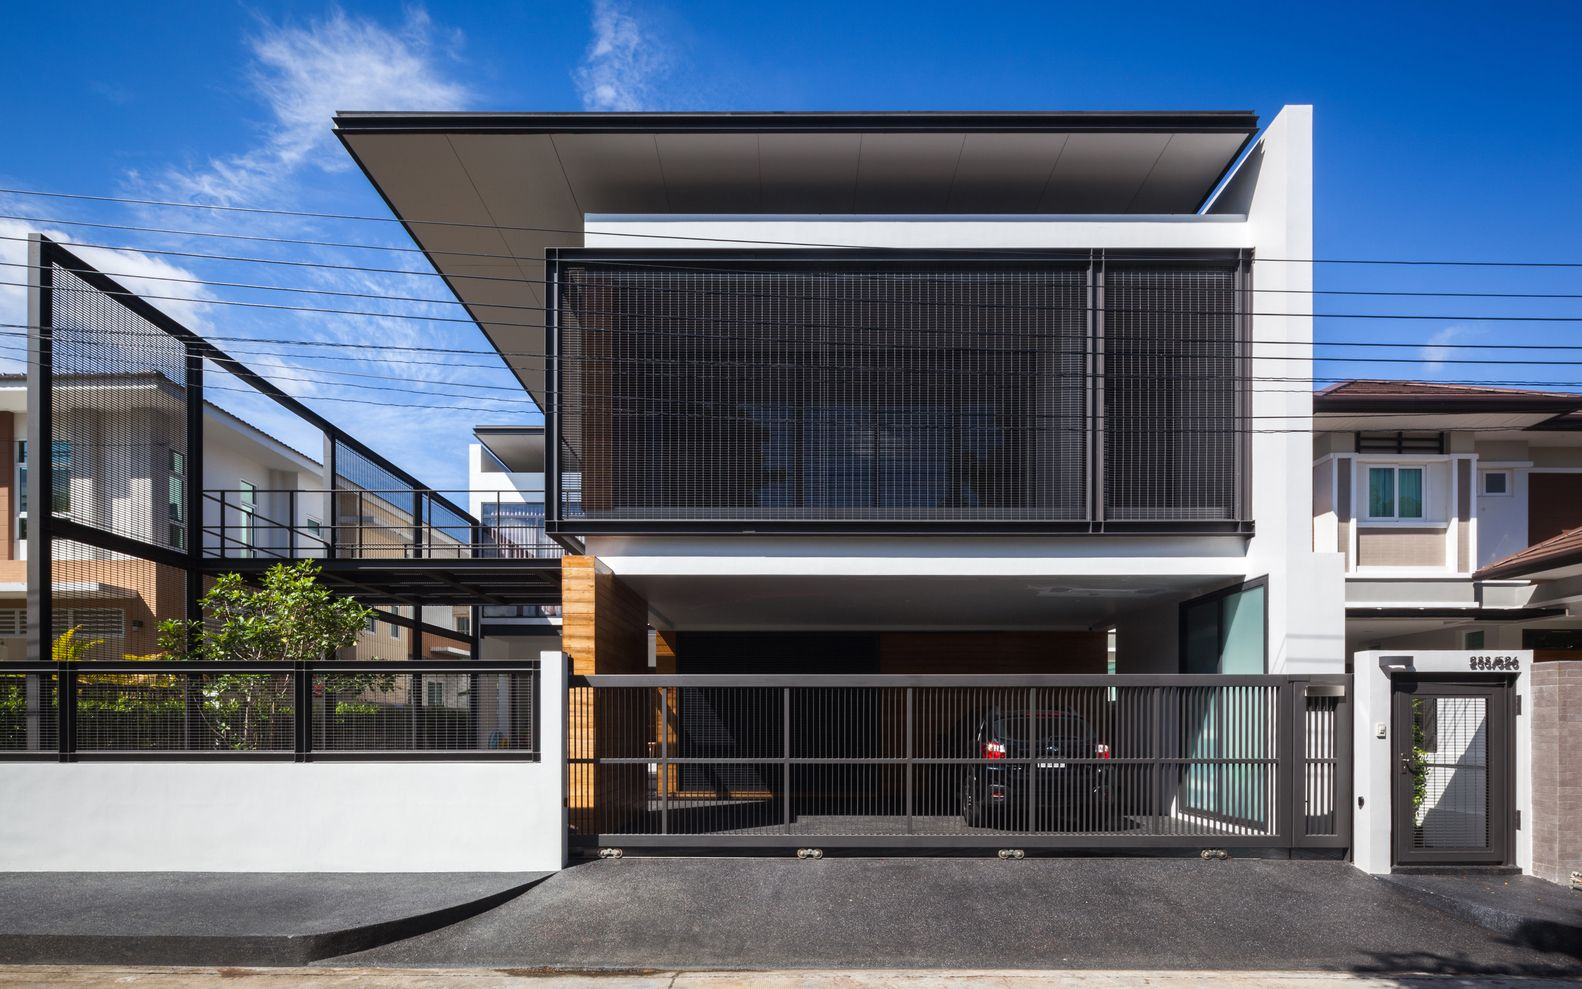 Gallery of P.K. House / Junsekino Architect and Design - 4